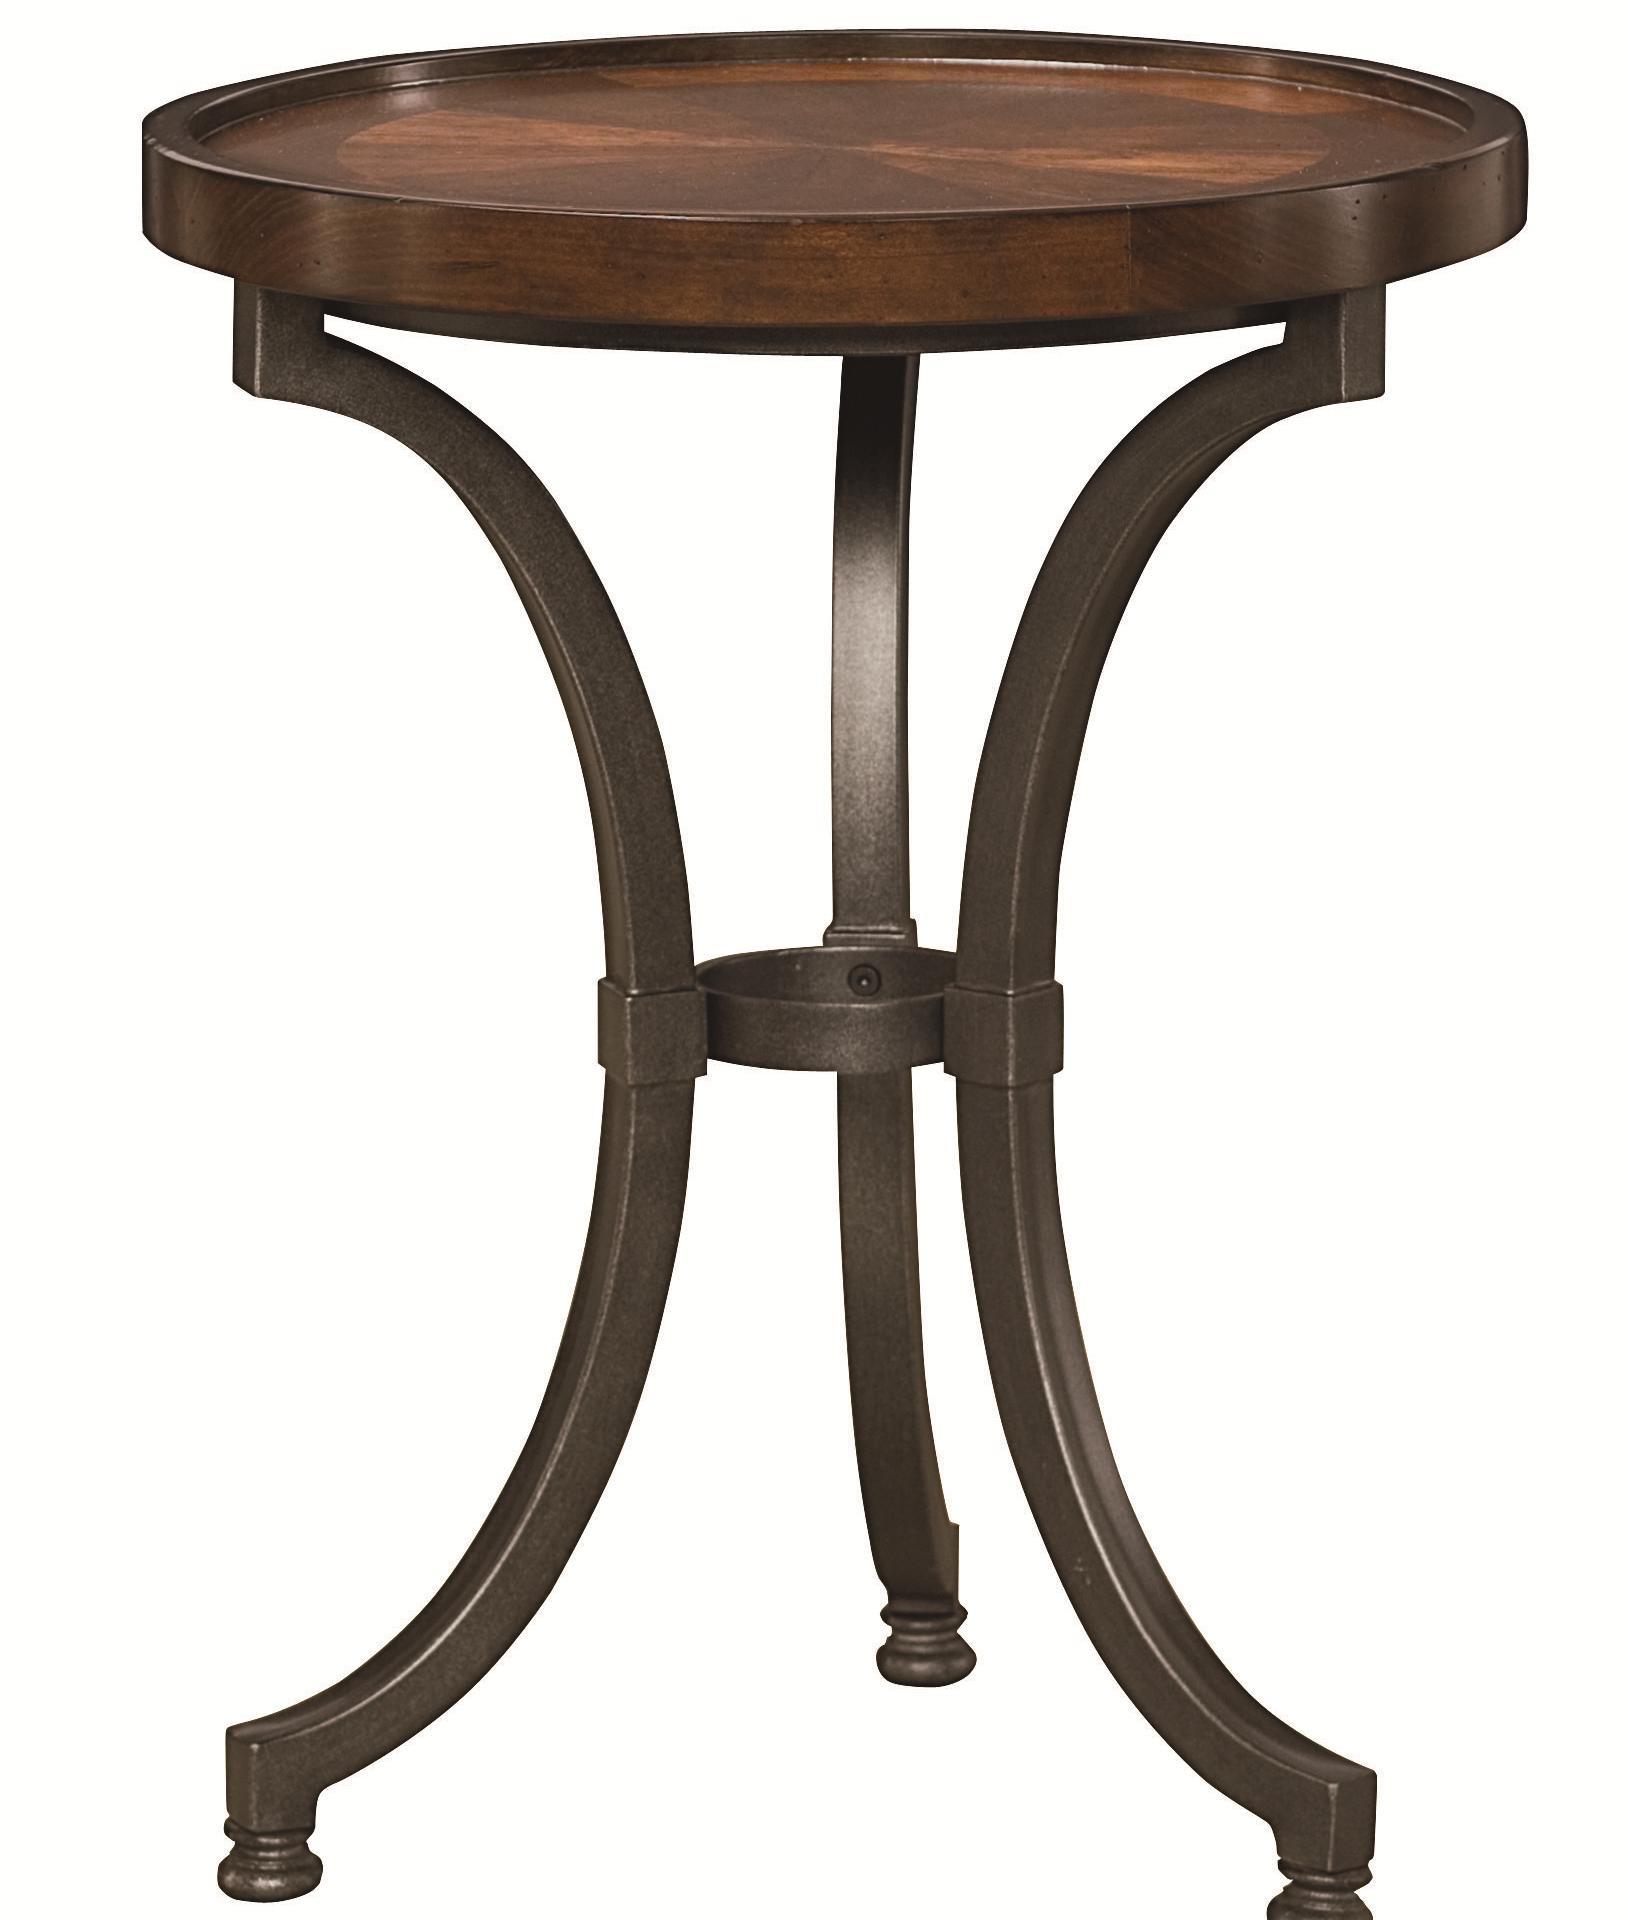 Barrow Round Chairside Table by Hammary at Alison Craig Home Furnishings